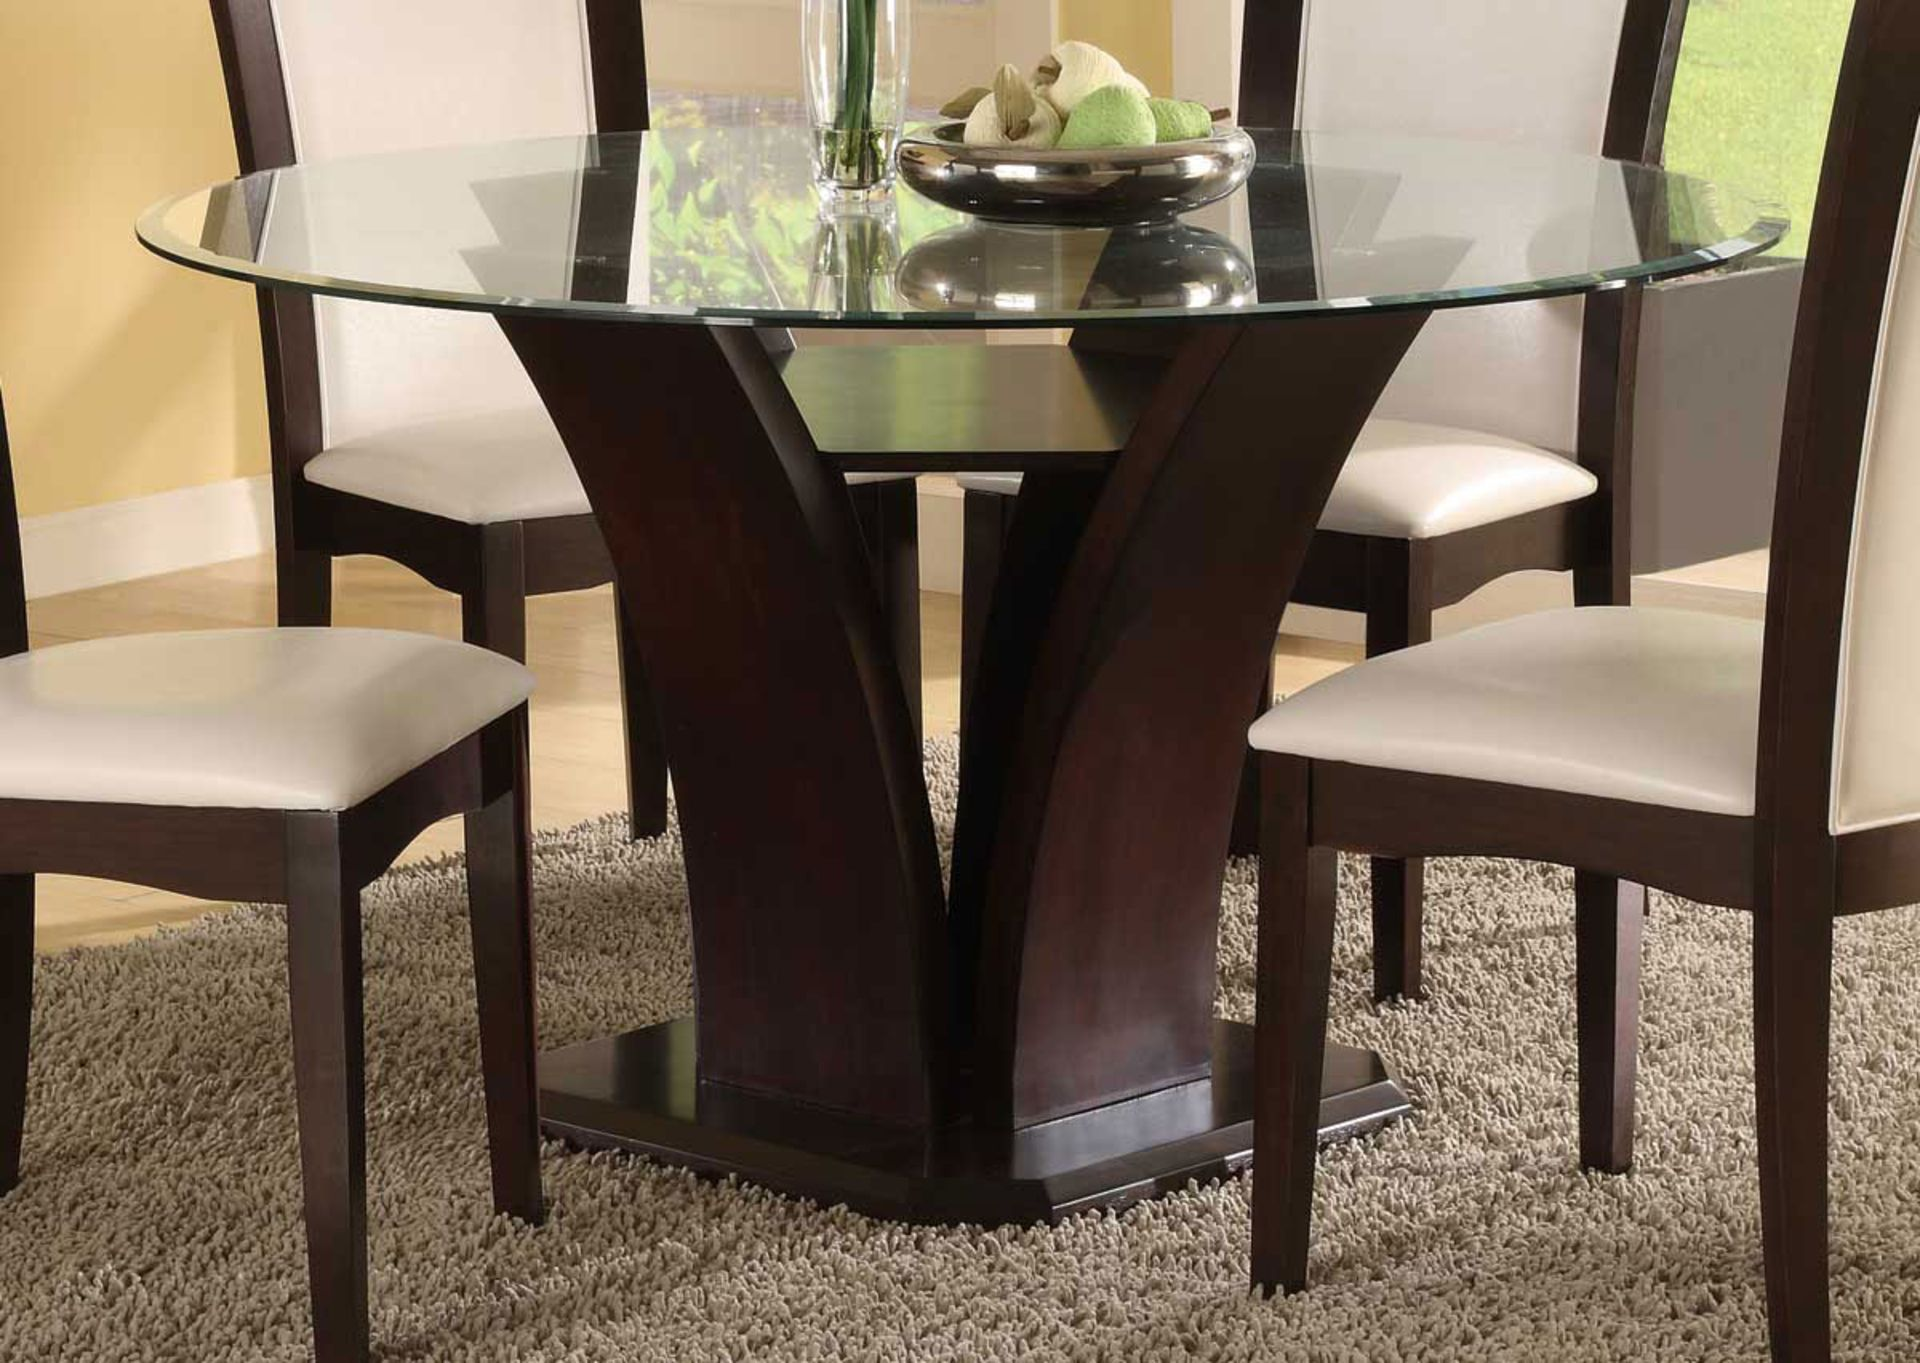 Table And Chairs Dining Room Plans Designs Bianca Glass Top Dining Table Legged Inspiring Ideas